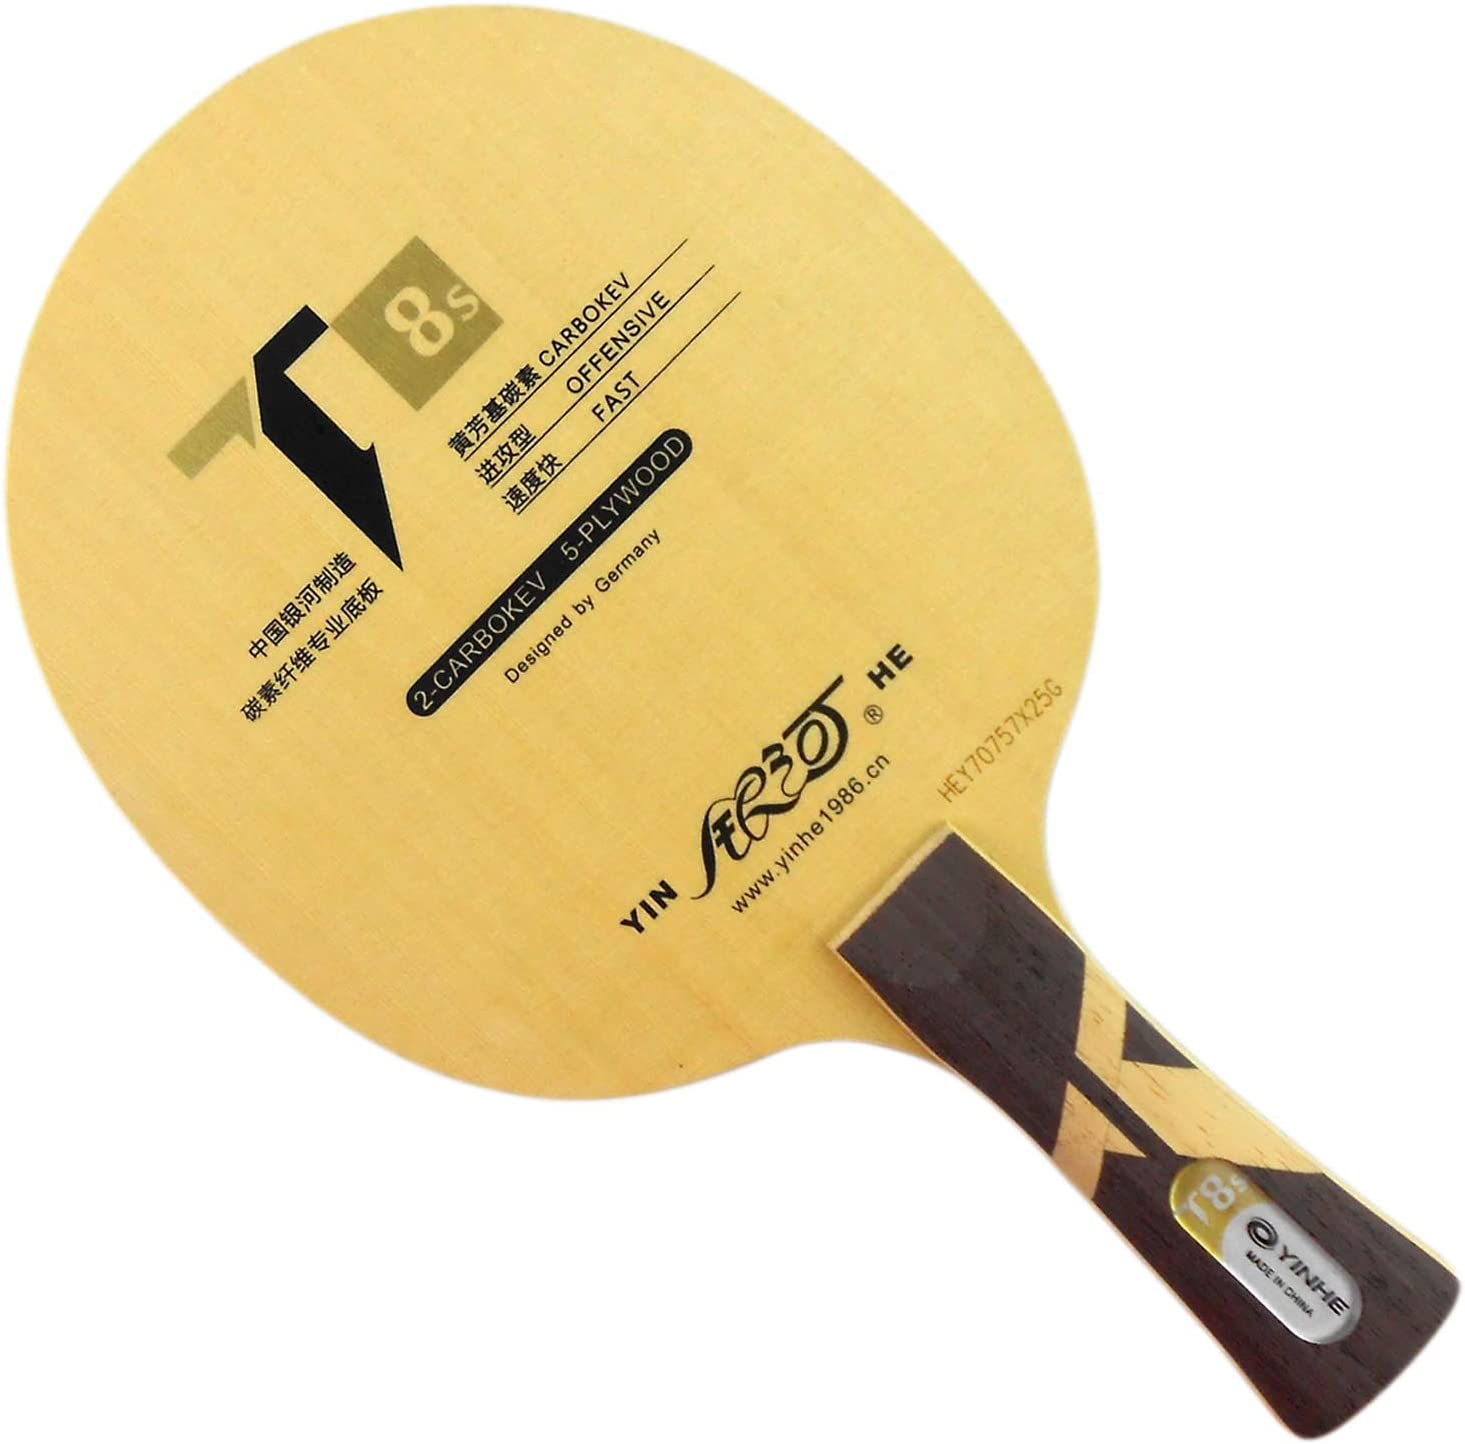 Galaxy T8s CARBOKEV It is very popular T-8 Denver Mall Upgrade Table Ping Blade for Tennis P